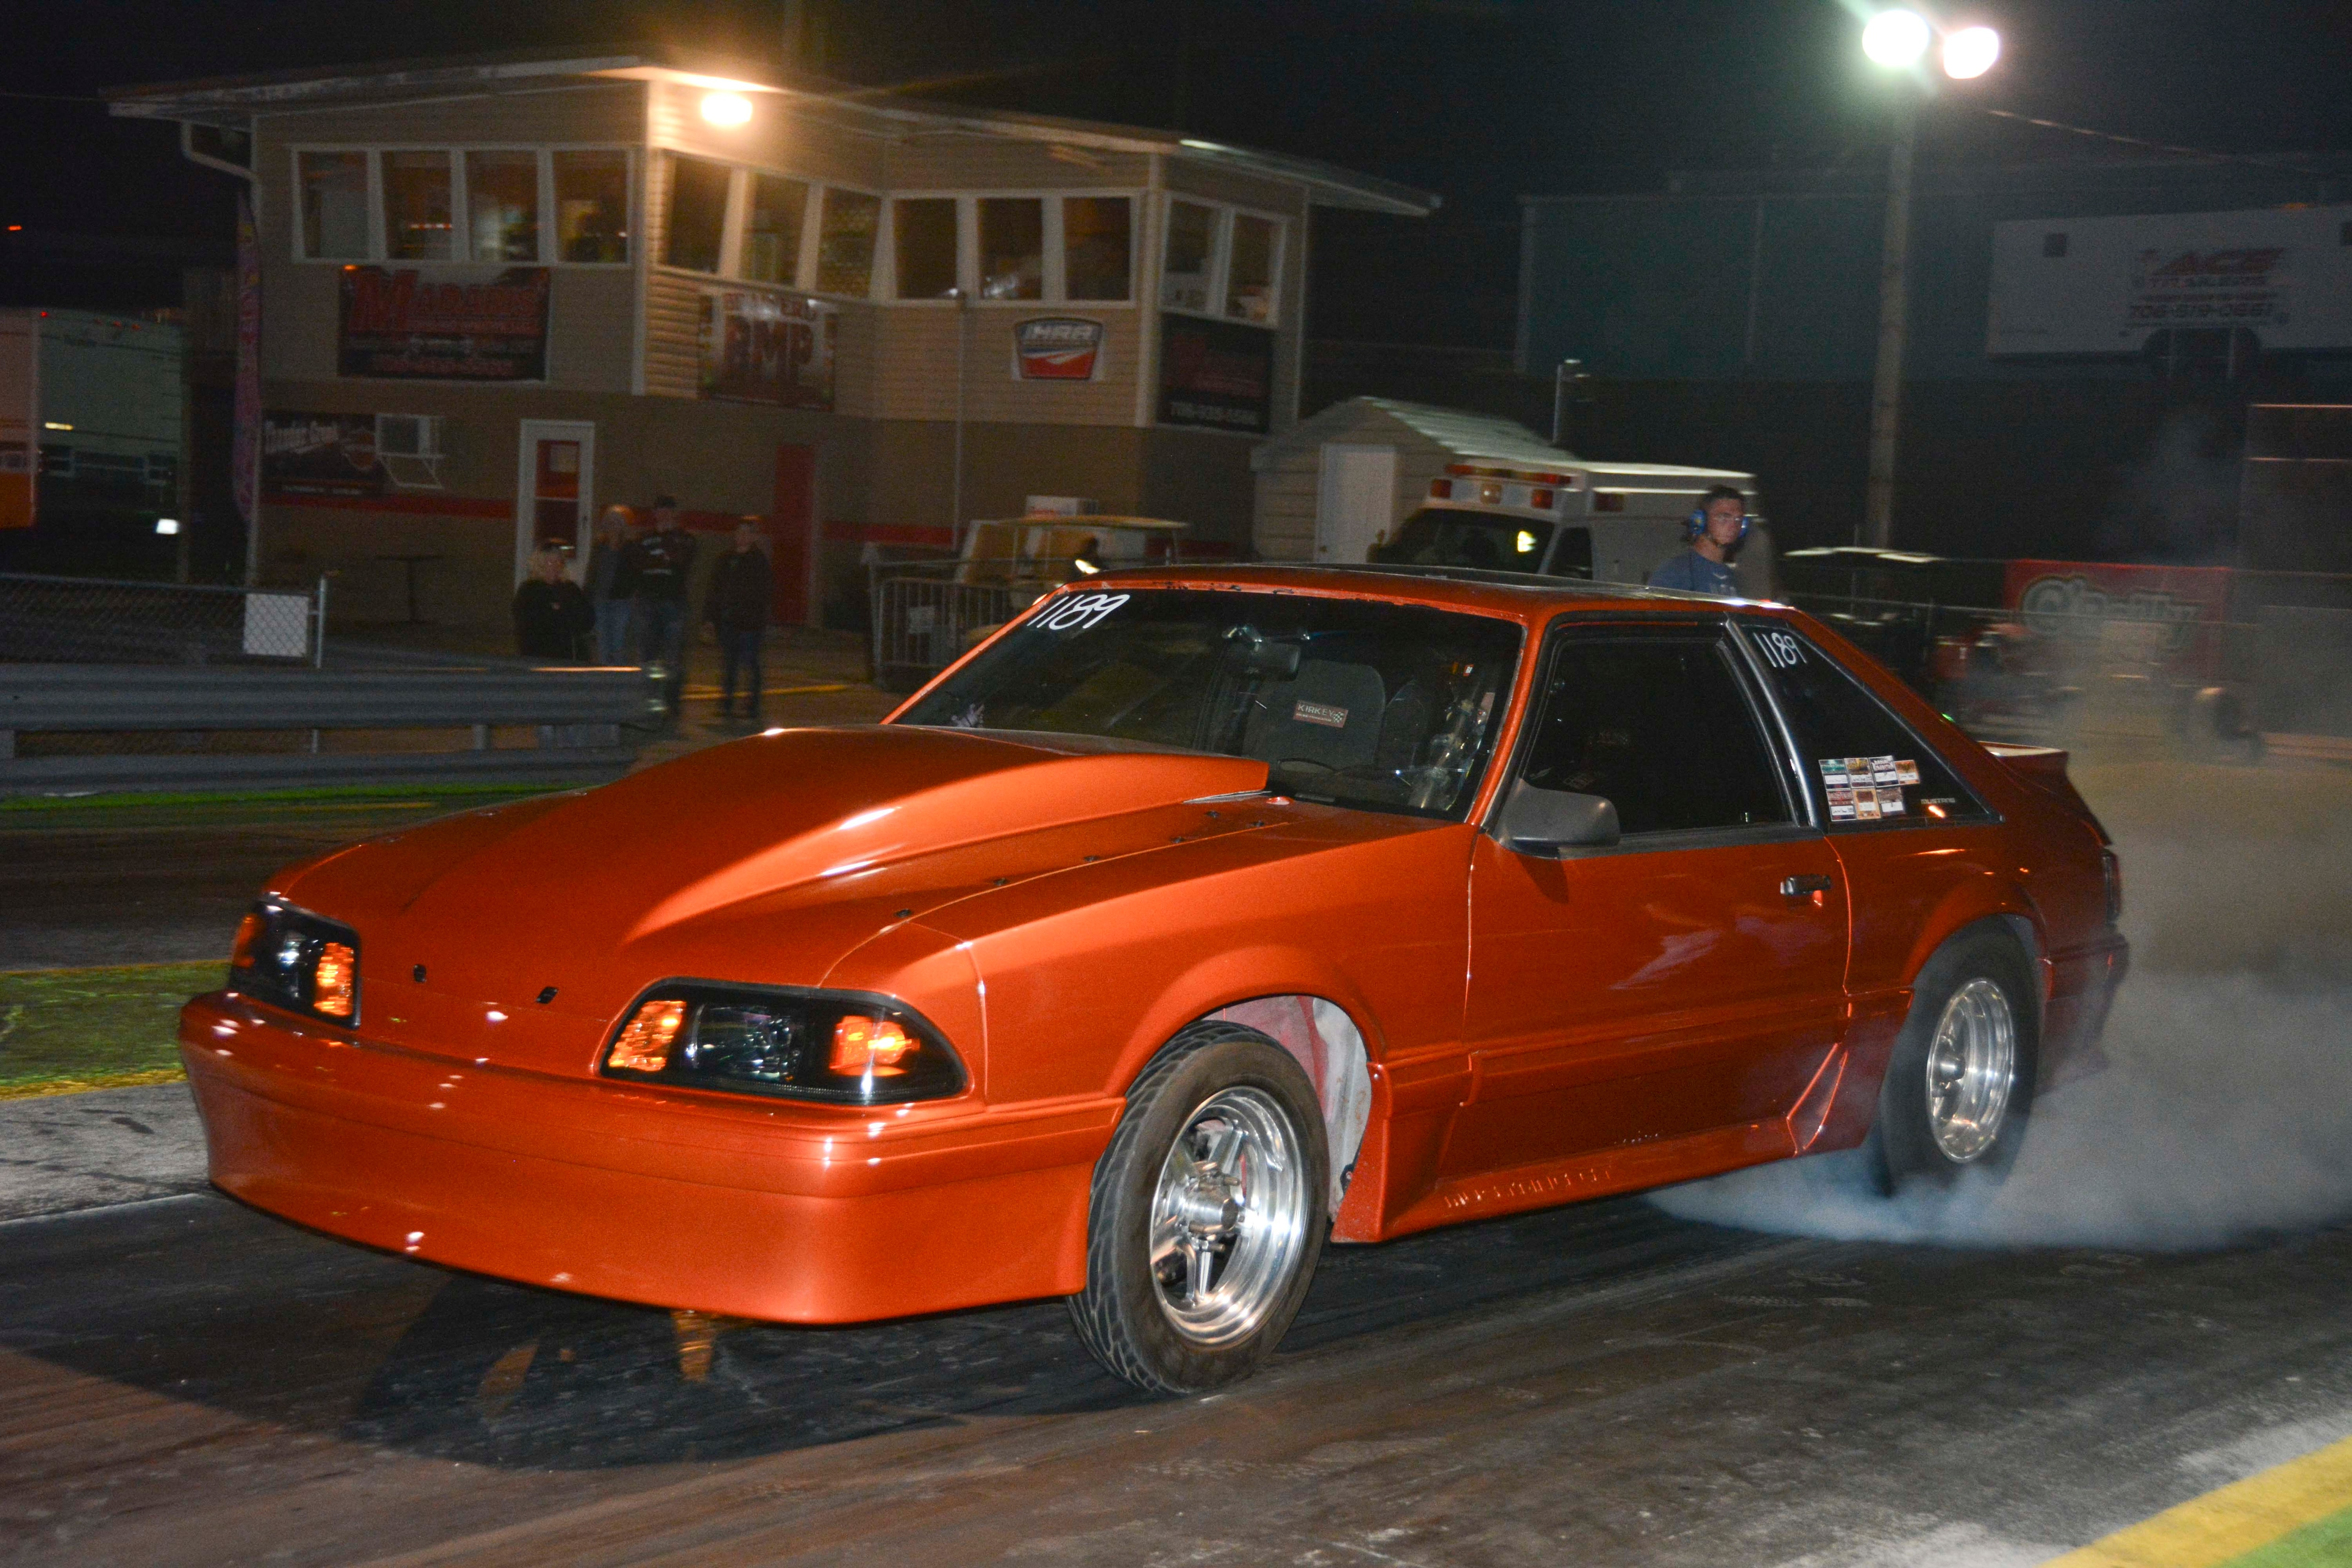 036 Orange Procharged Mustang Action